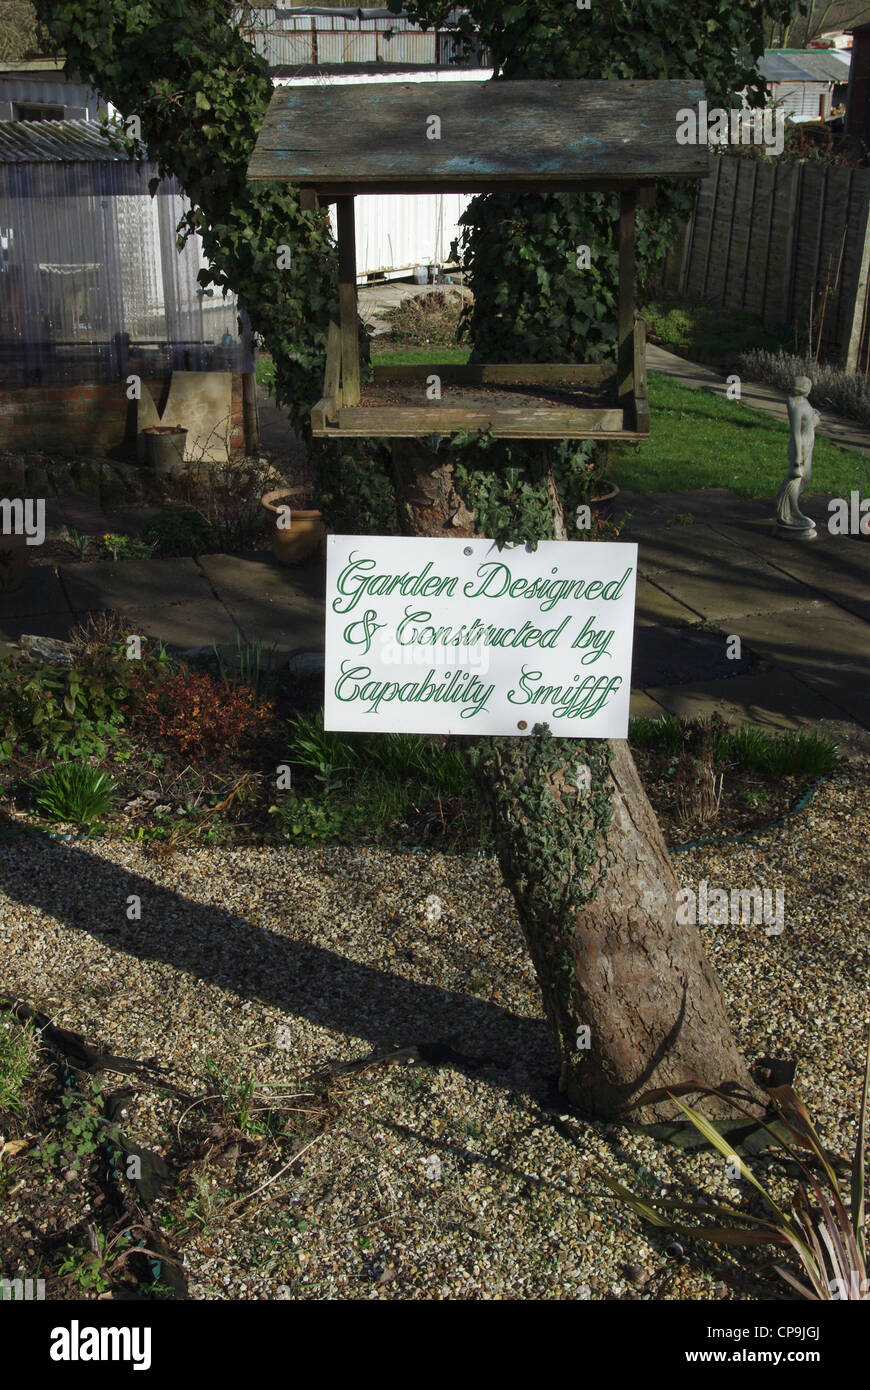 Quirky sign featuring garden design by Capability Smifff - Stock Image